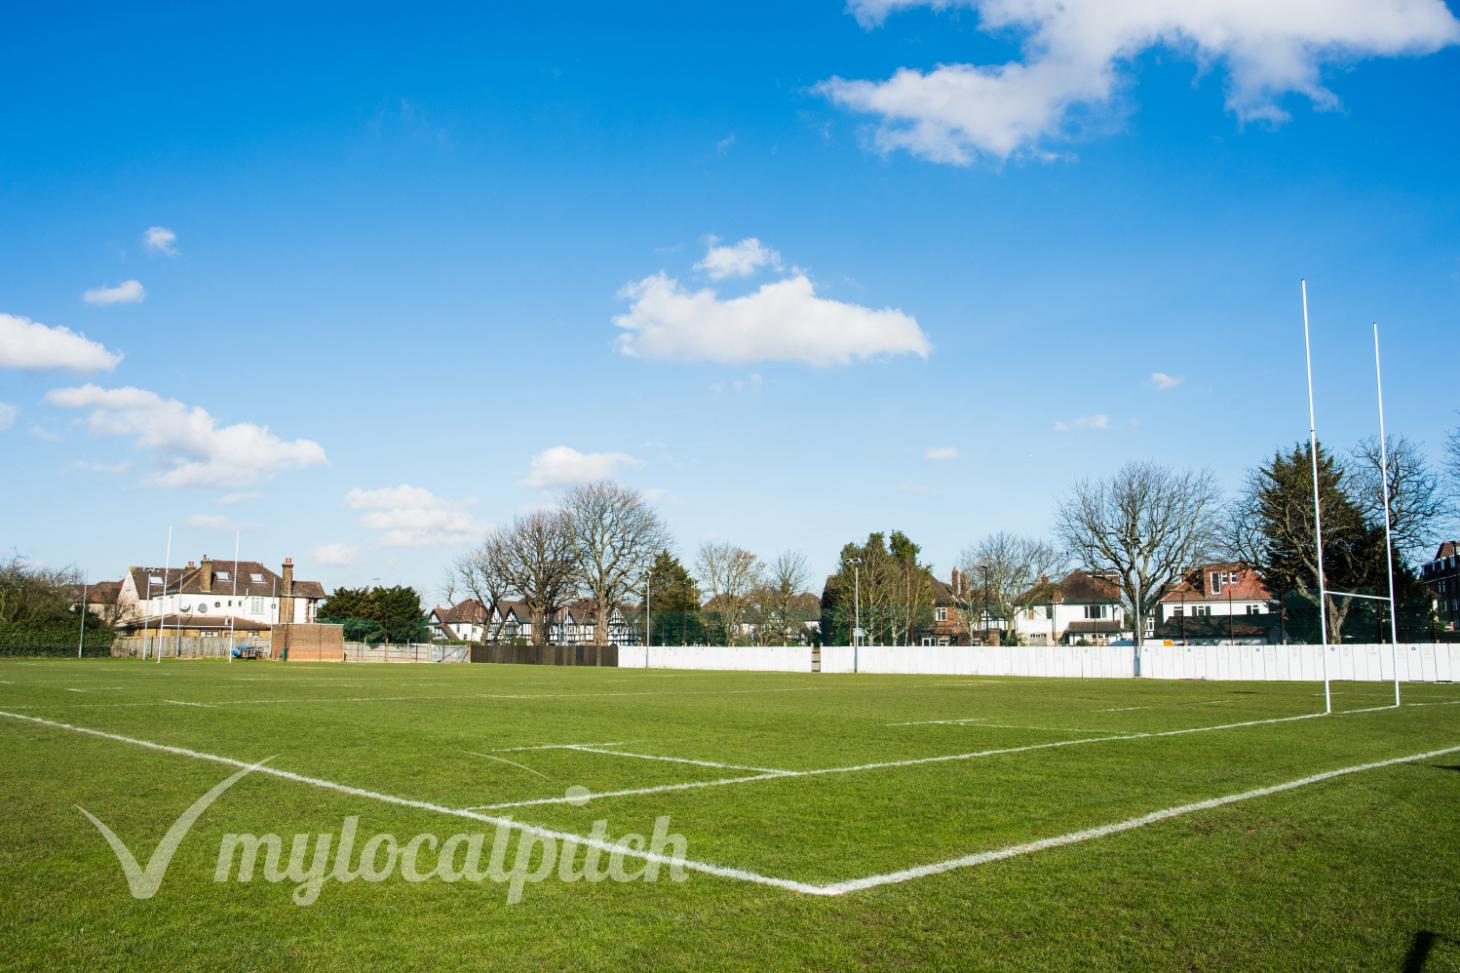 Old Actonians Association Union | Grass rugby pitch